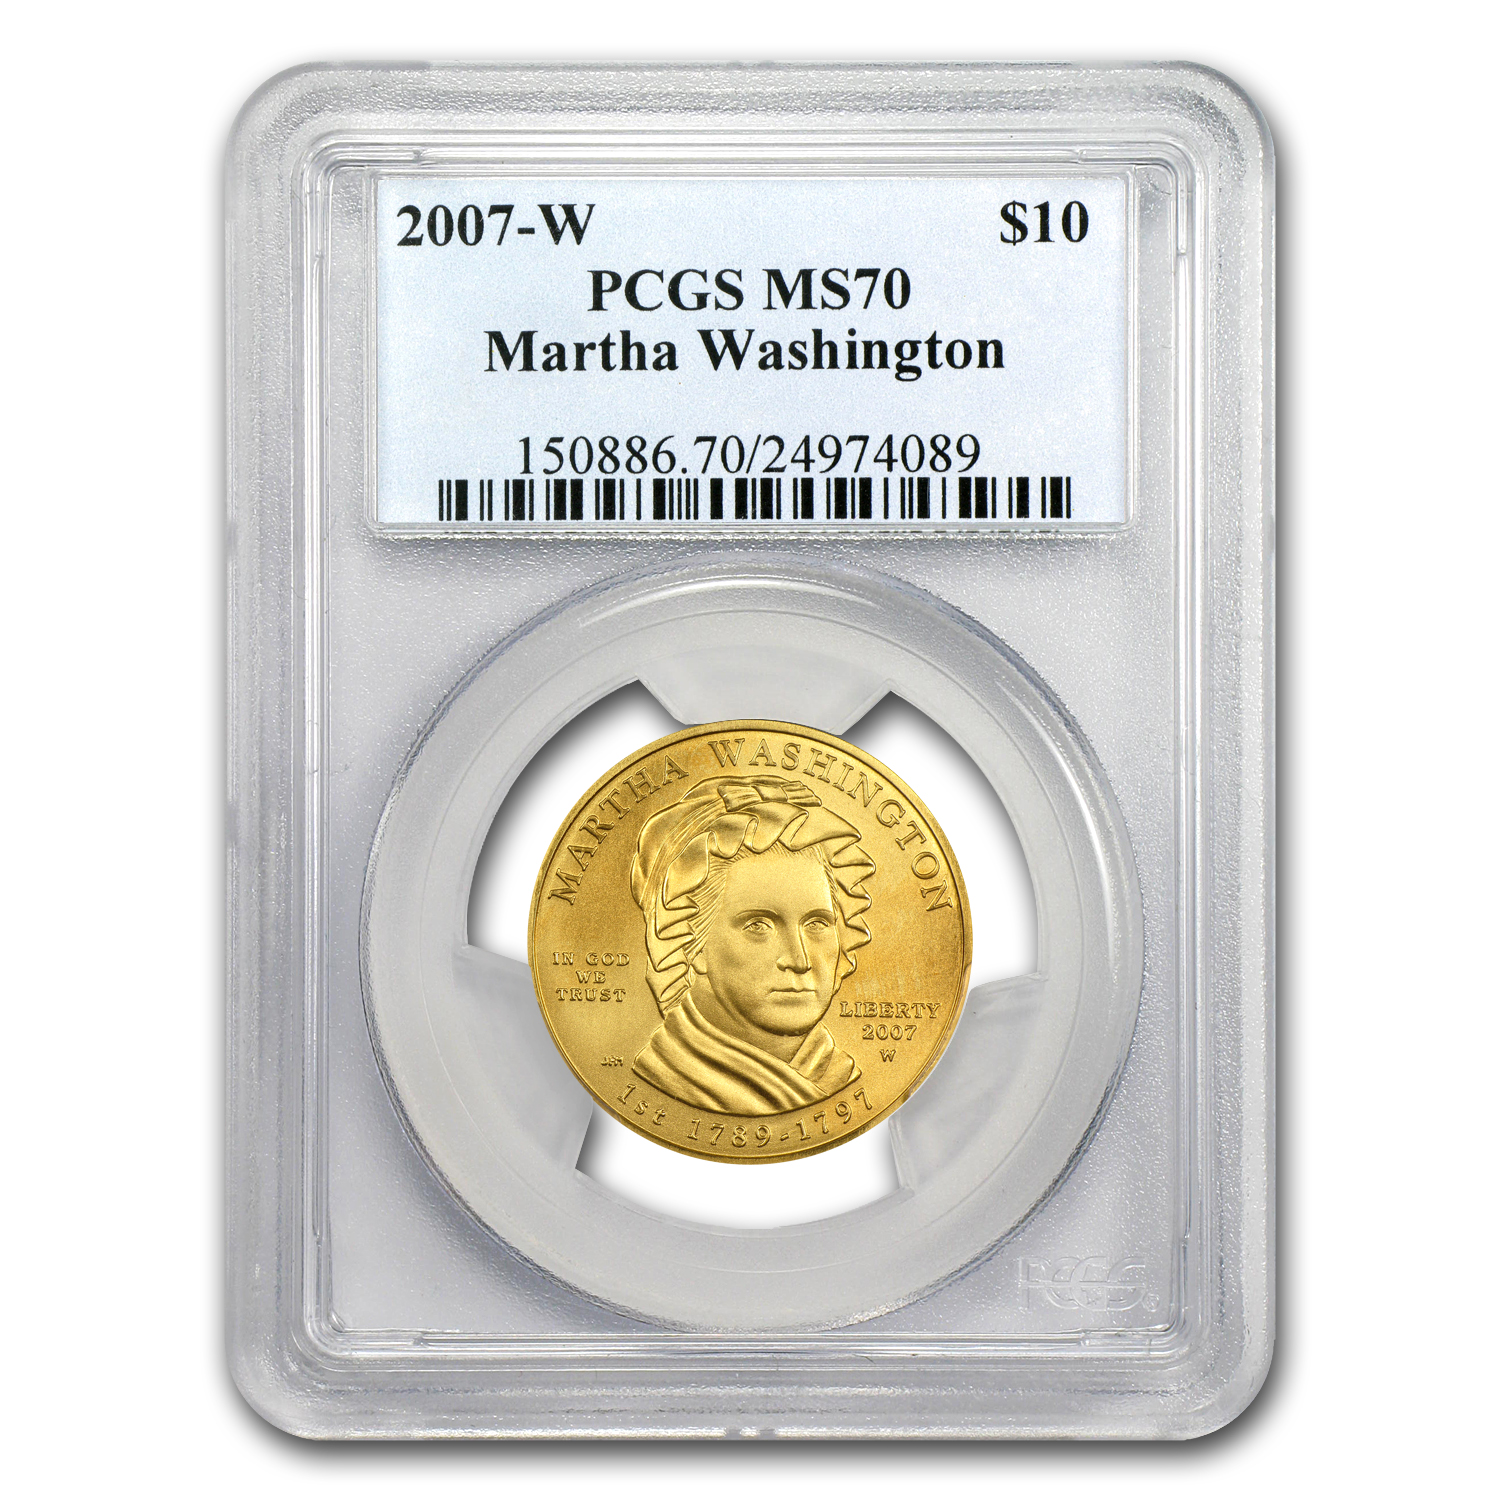 2007-W 1/2 oz Gold Martha Washington MS-70 PCGS